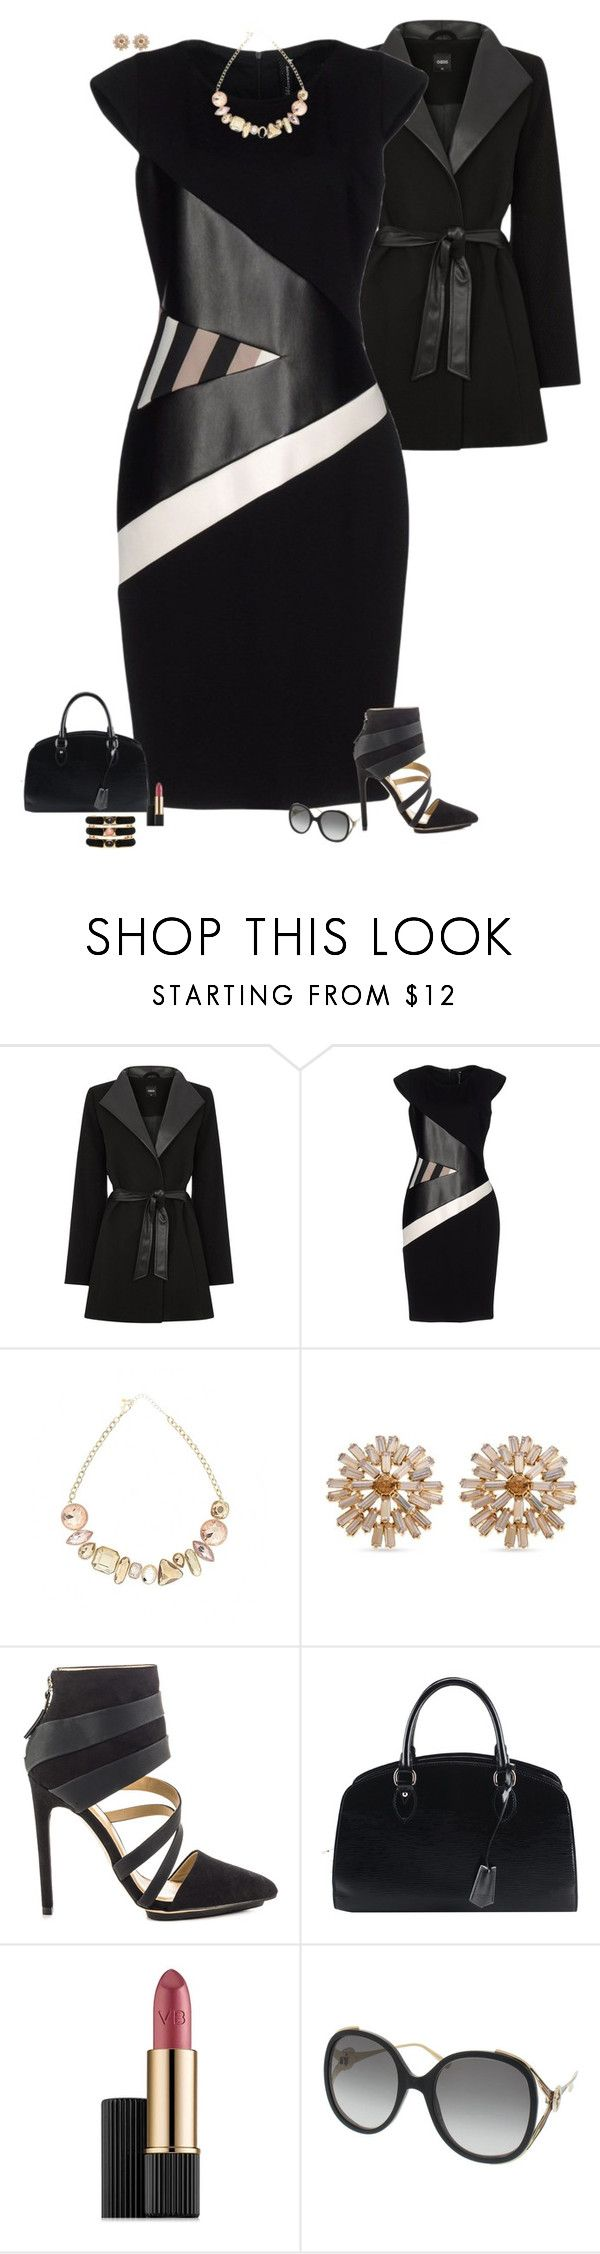 """Leather details"" by julietajj ❤ liked on Polyvore featuring Oasis, Pianurastudio, Erica Lyons, GX, Louis Vuitton, Victoria Beckham, Gucci and Roberto Cavalli"